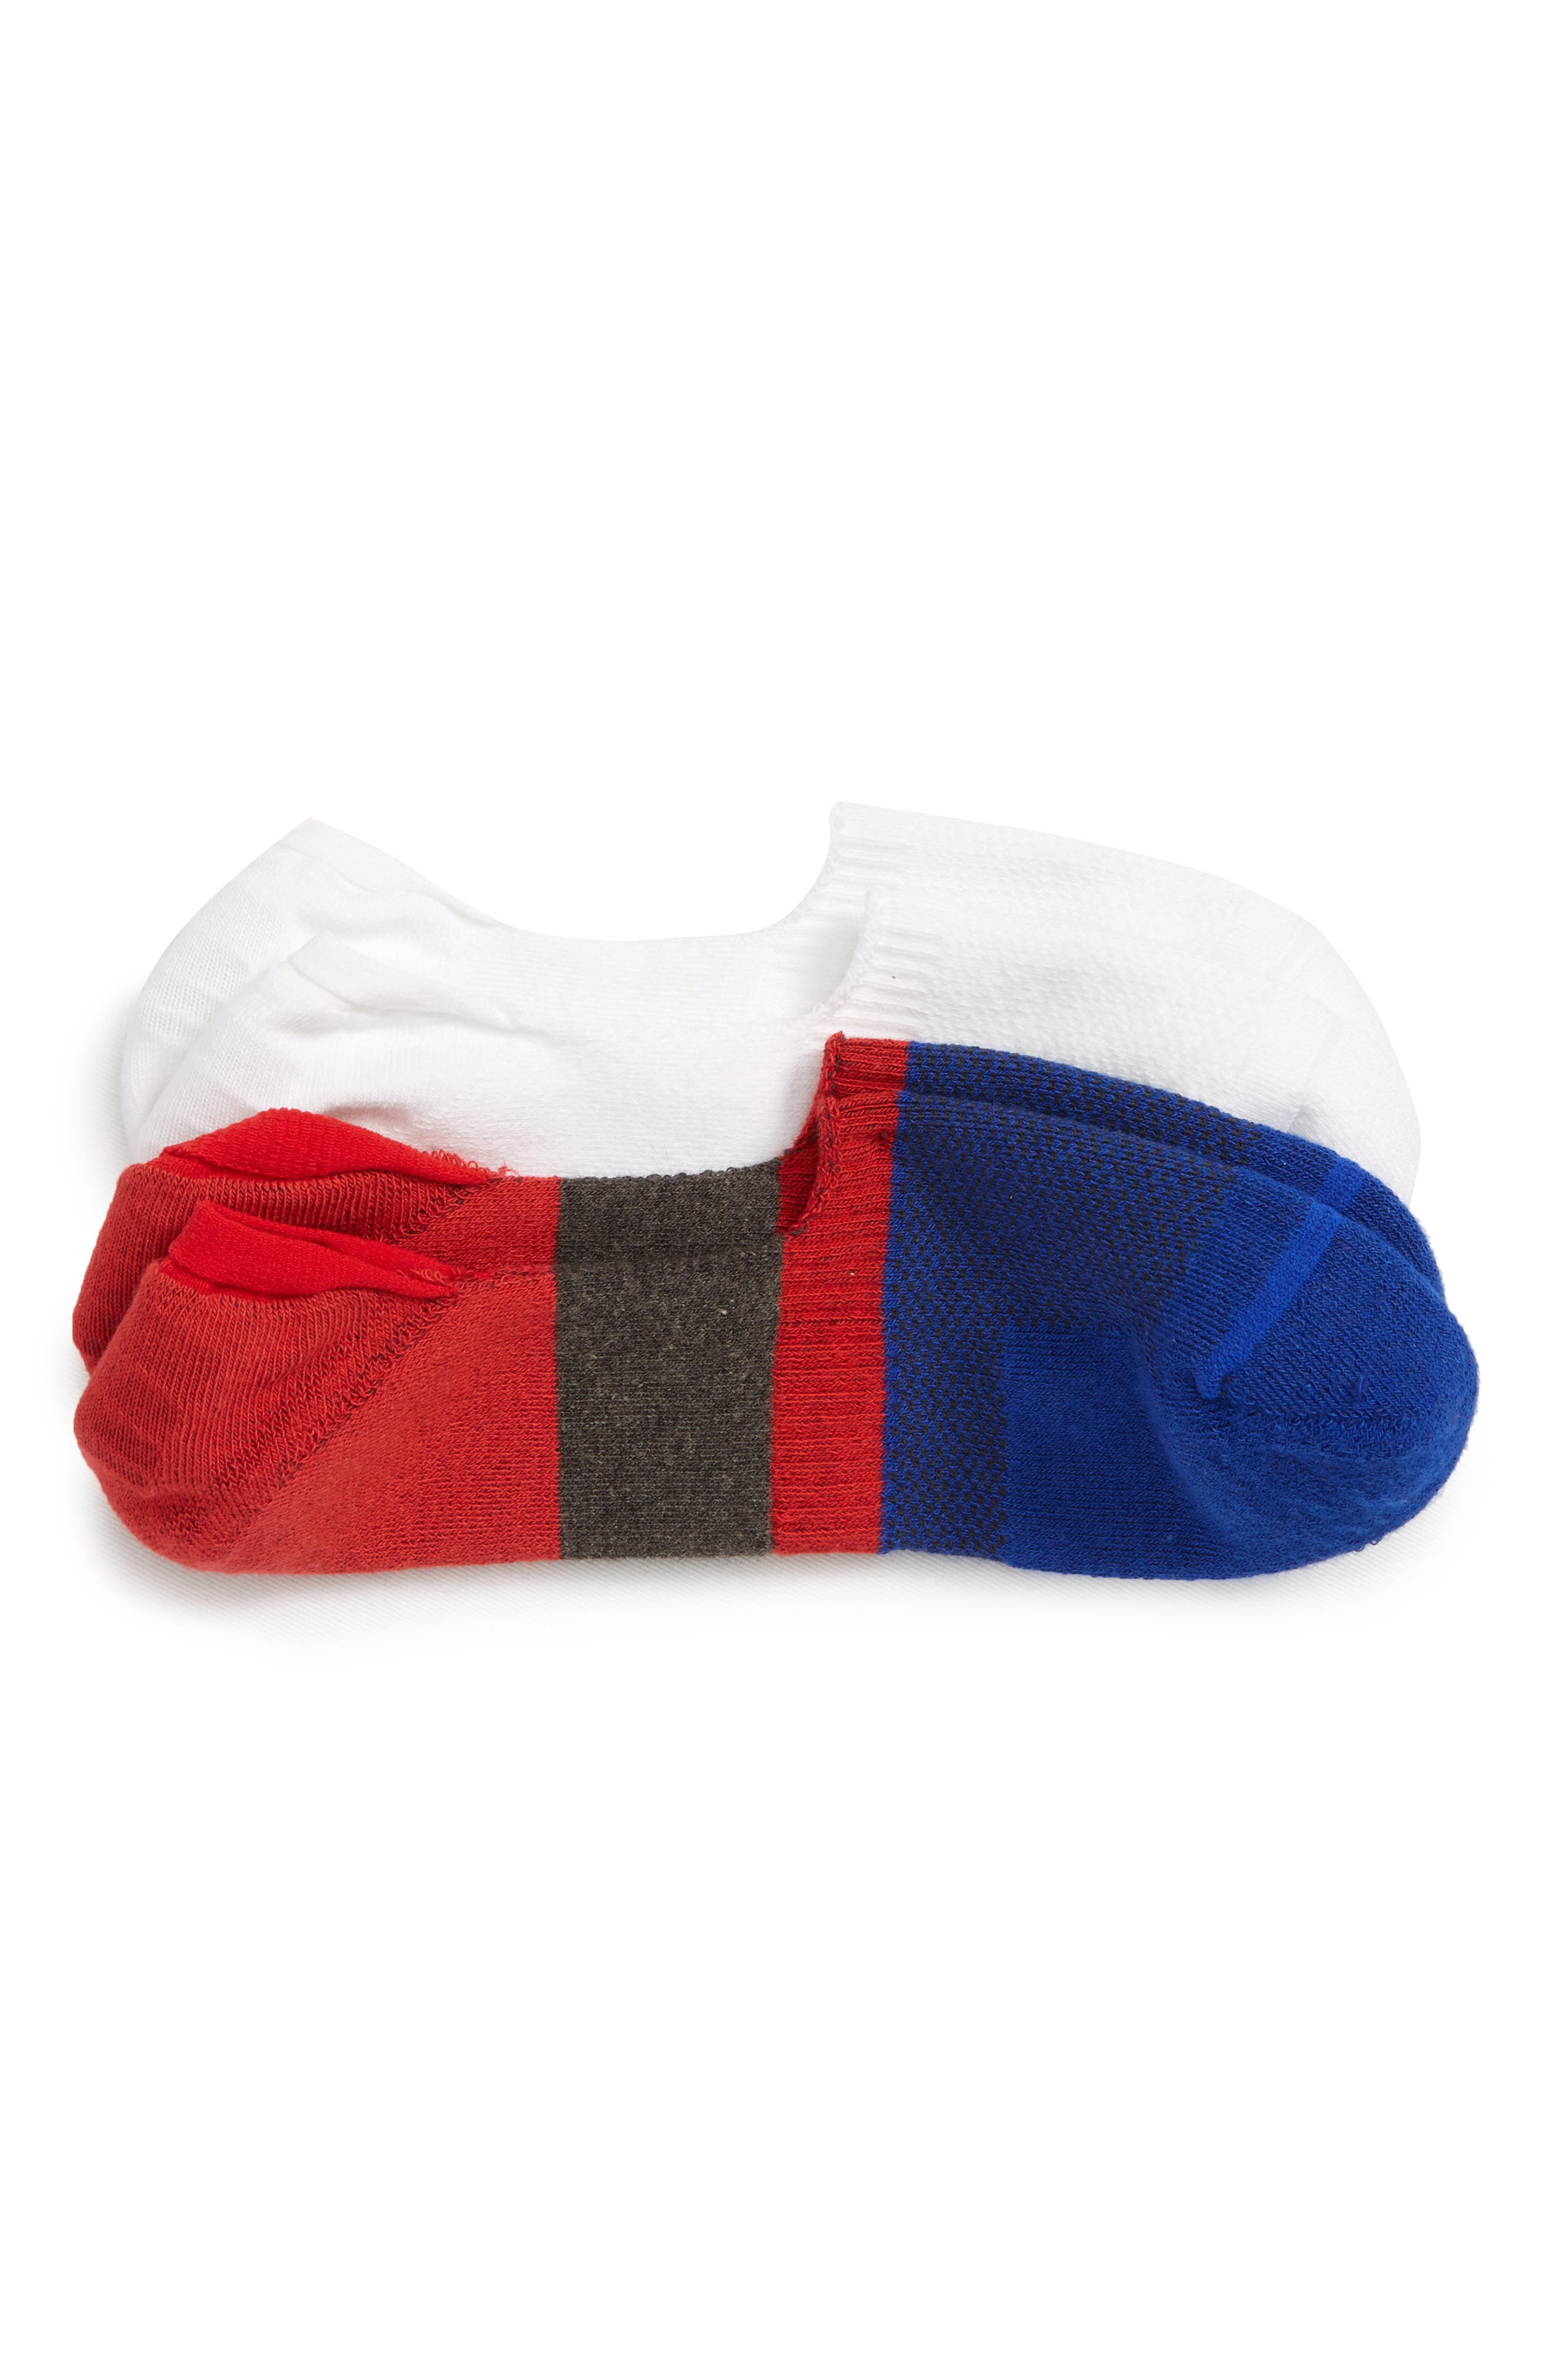 Nordstrom Mens Shop 2-Pack Performance Liner Socks,                         Main,                         color, RED/ WHITE/ BLUE